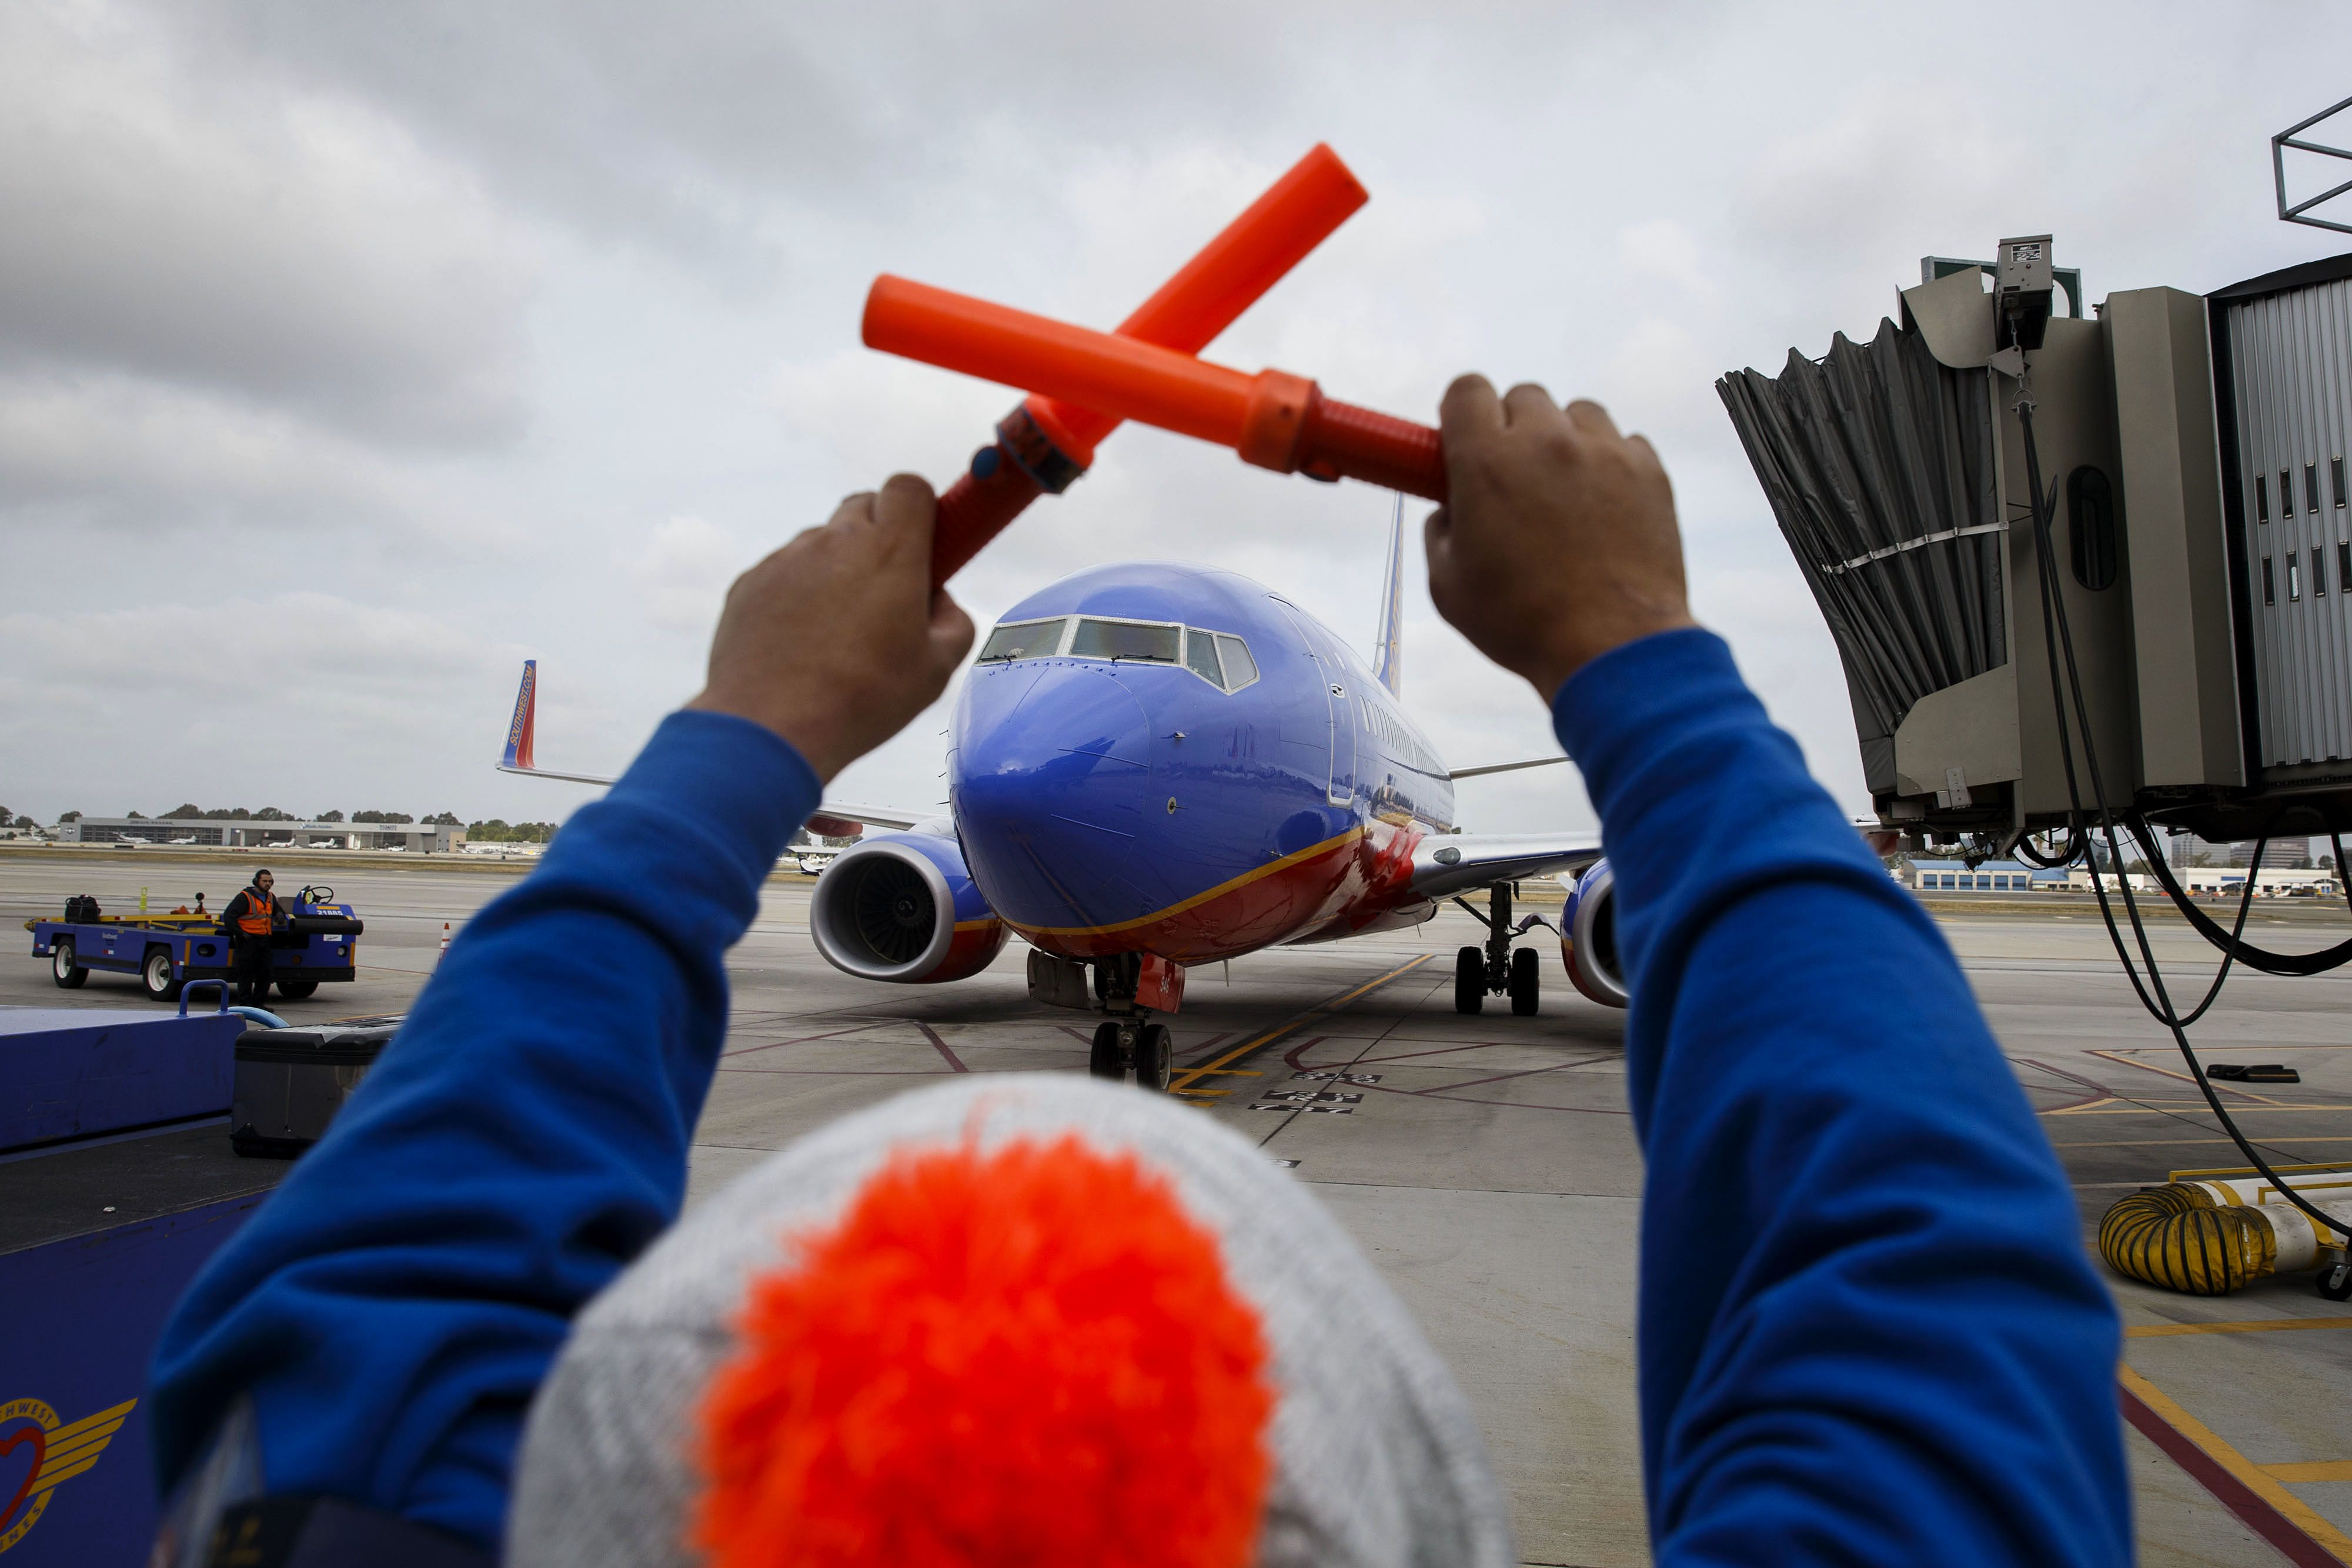 Airline bumping hits 2-years high with Boeing 737 Max grounded